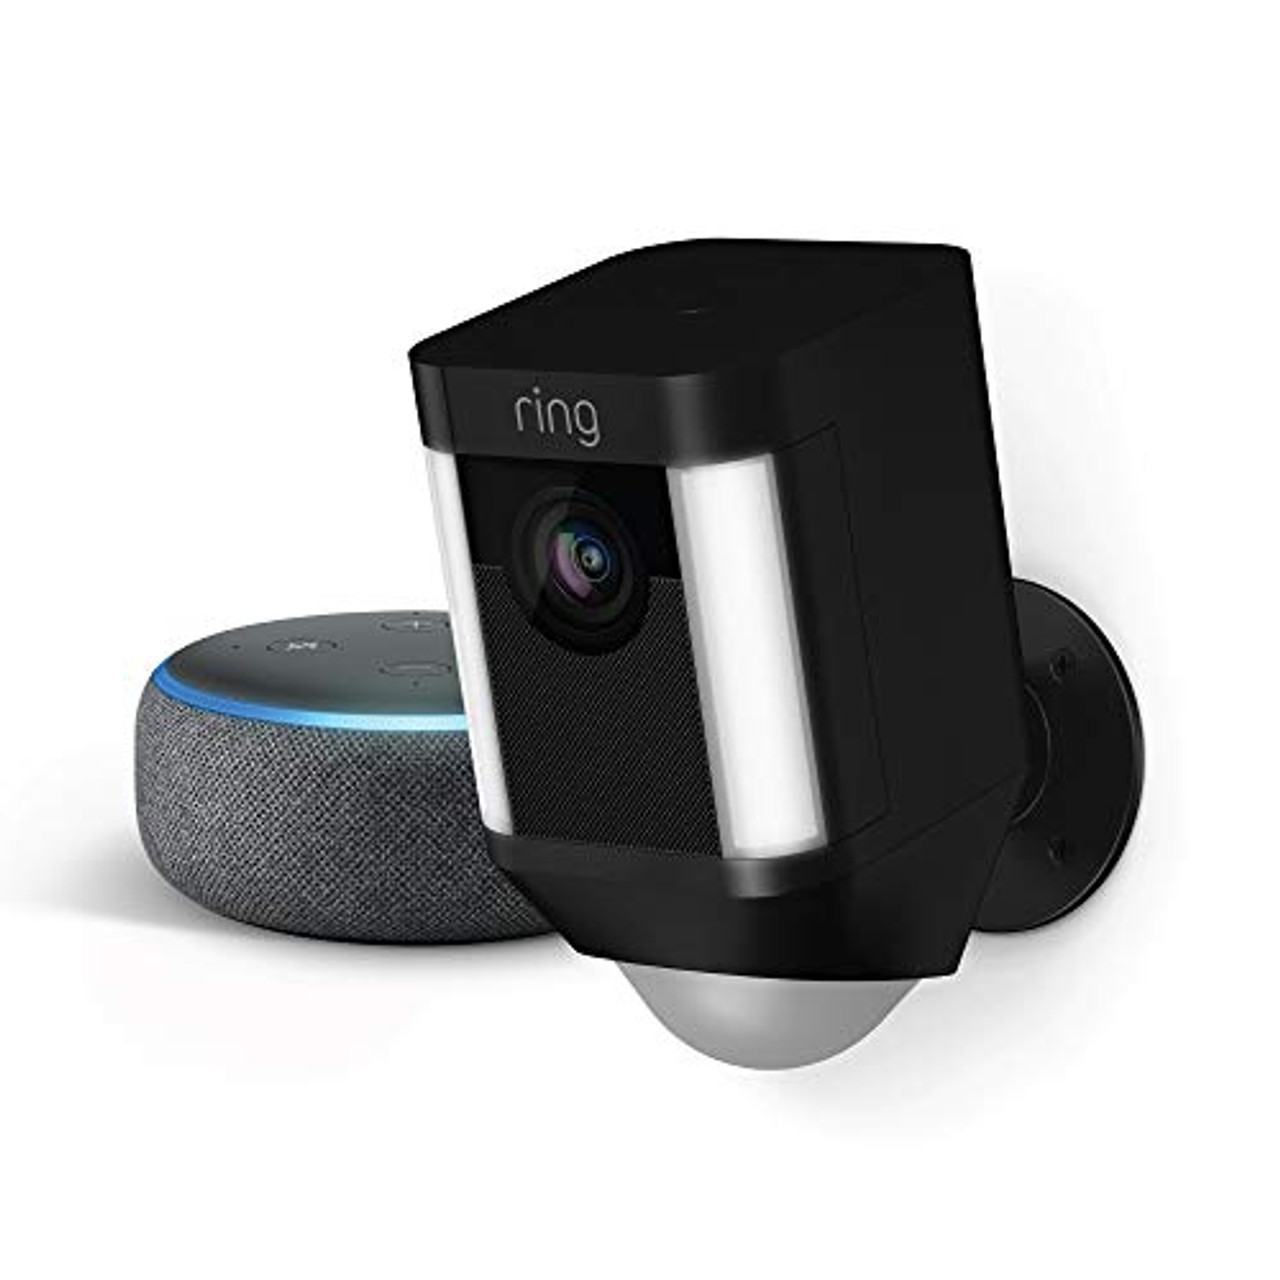 Ring Spotlight Cam Battery (Black) with Echo Dot (Charcoal)